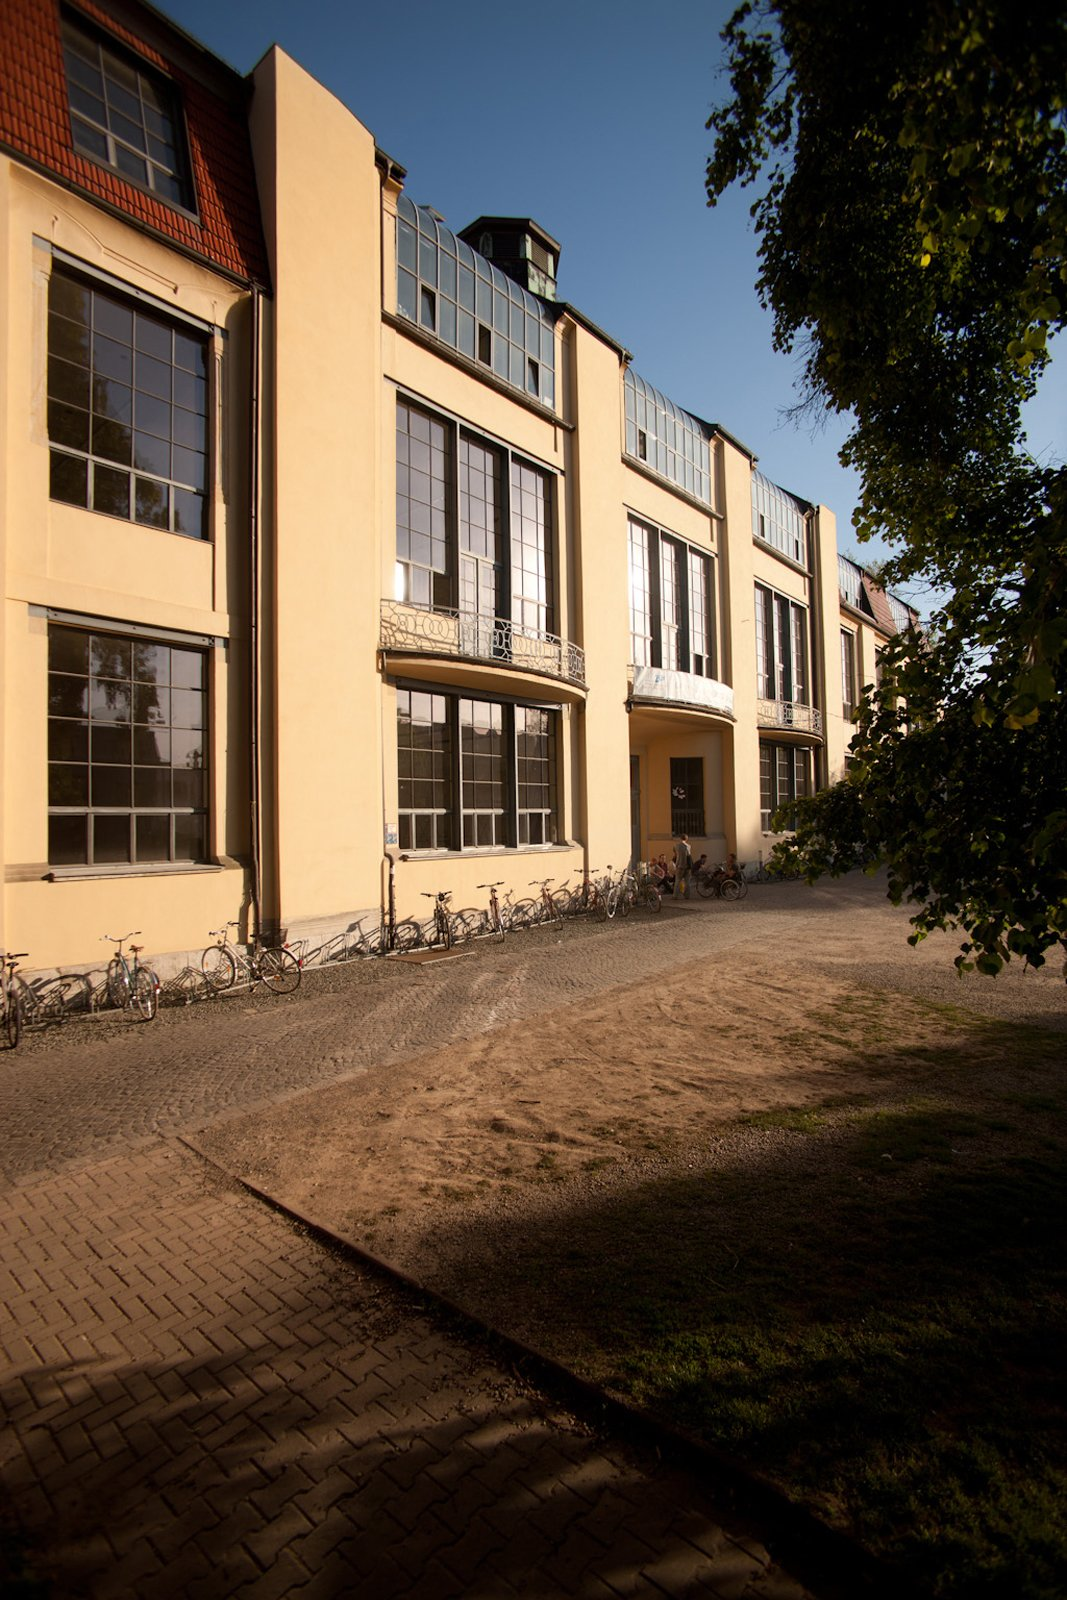 The main building of Bauhaus University. Designed by Henry van de Velde in 1904 when it was the School of Art and Applied Arts. The design and installation of large windows provided the students with natural light. Van de Velde was the director there from 1902 - 1917. The building is now a UNESCO World Heritage Site.  Photo 2 of 4 in Art Nouveau Architect Henry van de Velde